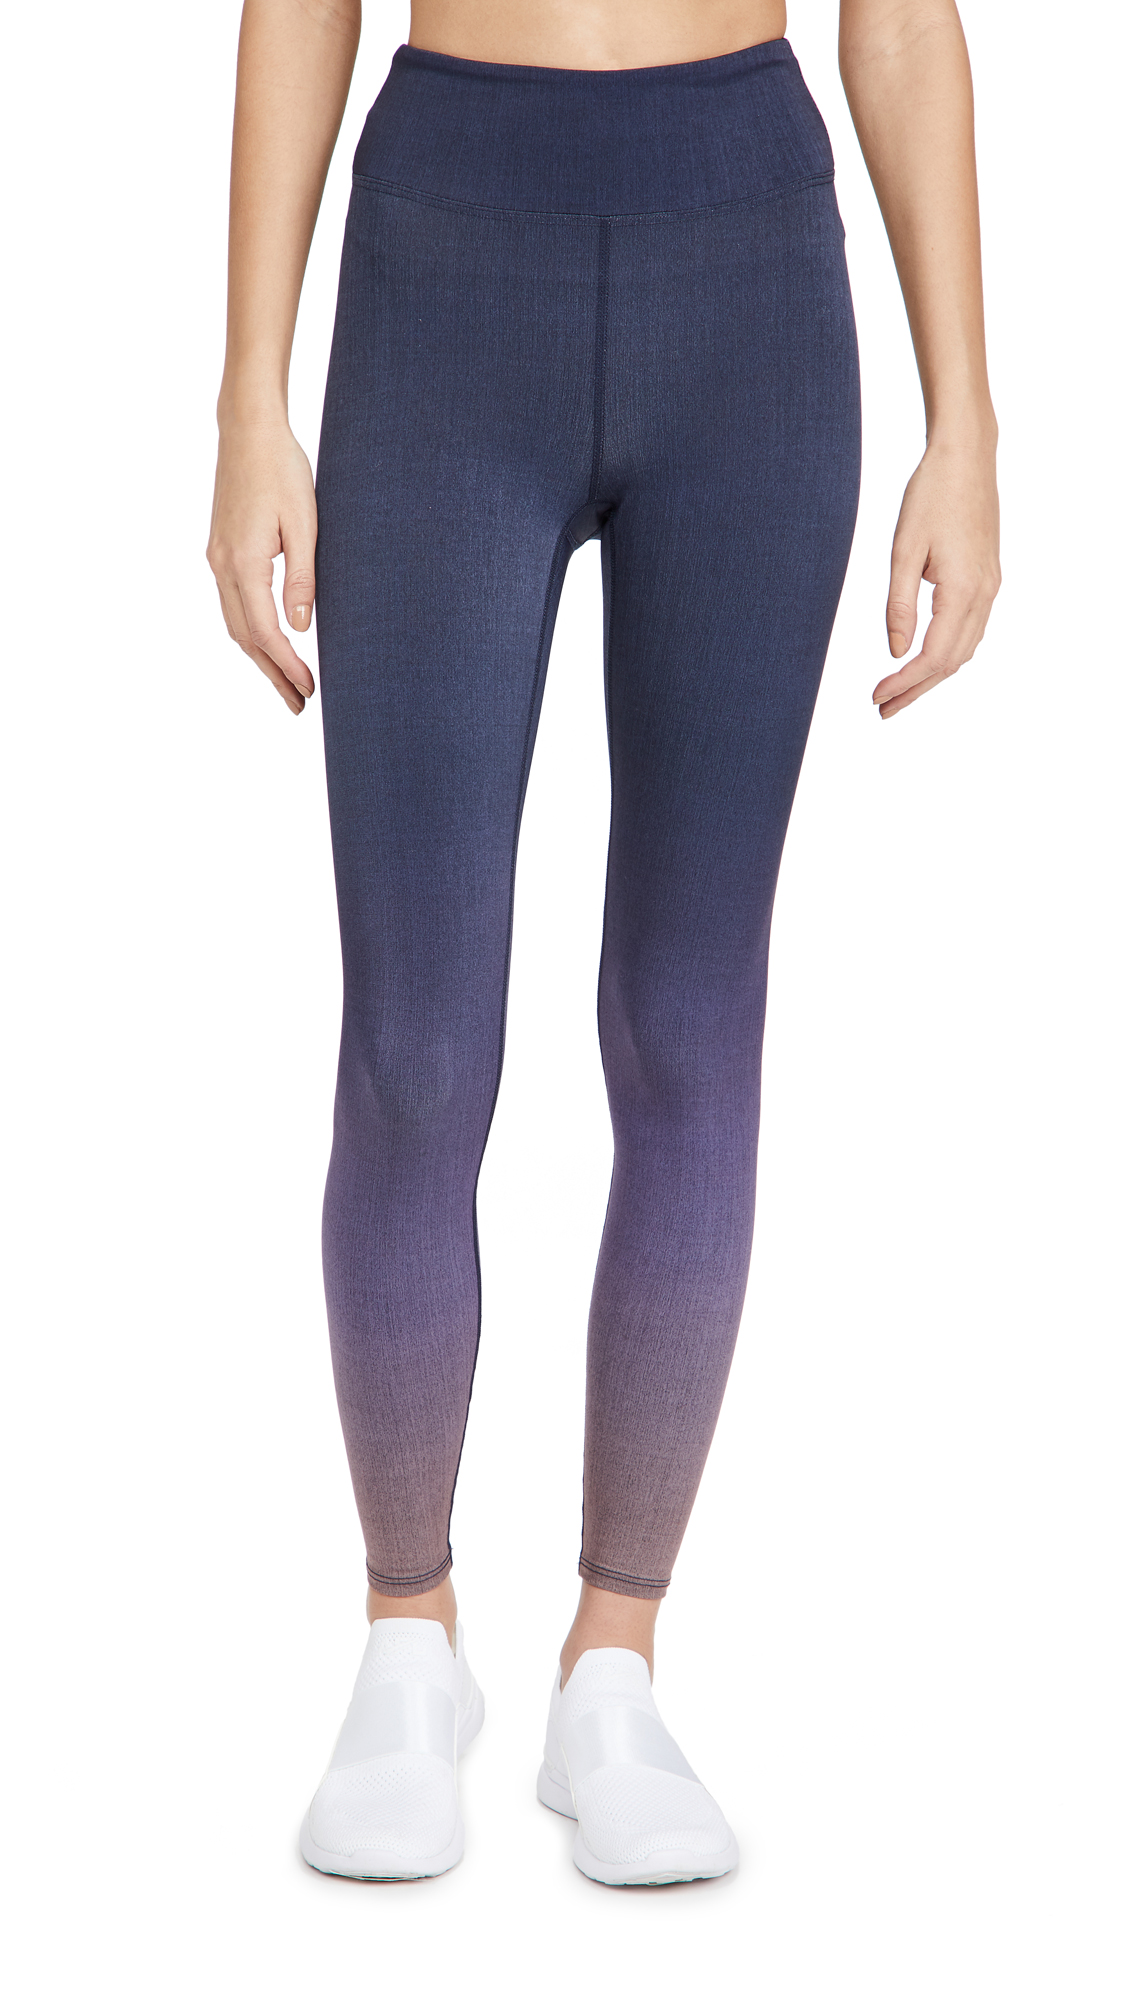 Heroine Sport HORIZON LEGGINGS